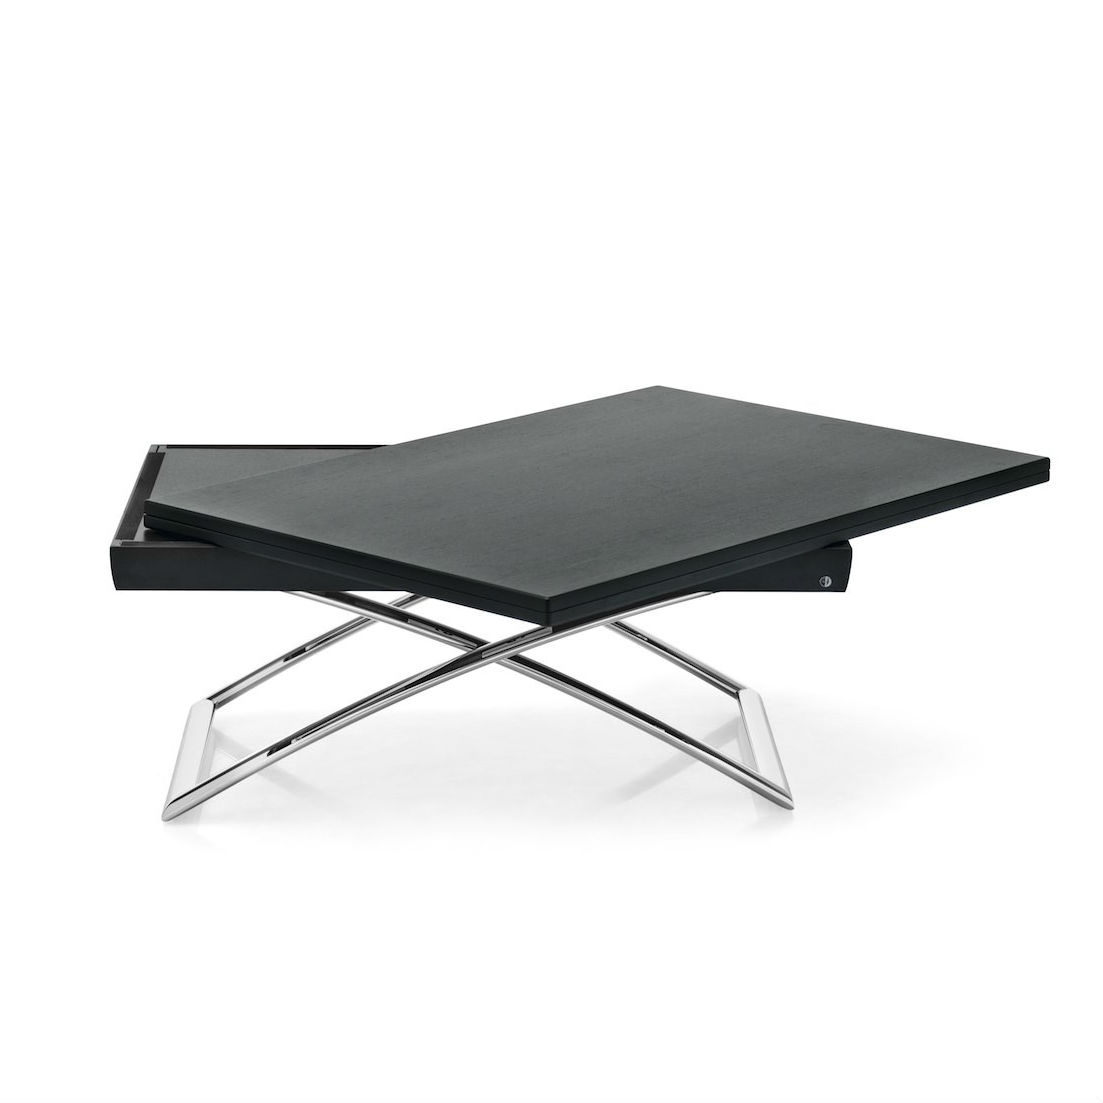 Table Basse Transformable Des Tables Basses Transformables Guten Morgwen